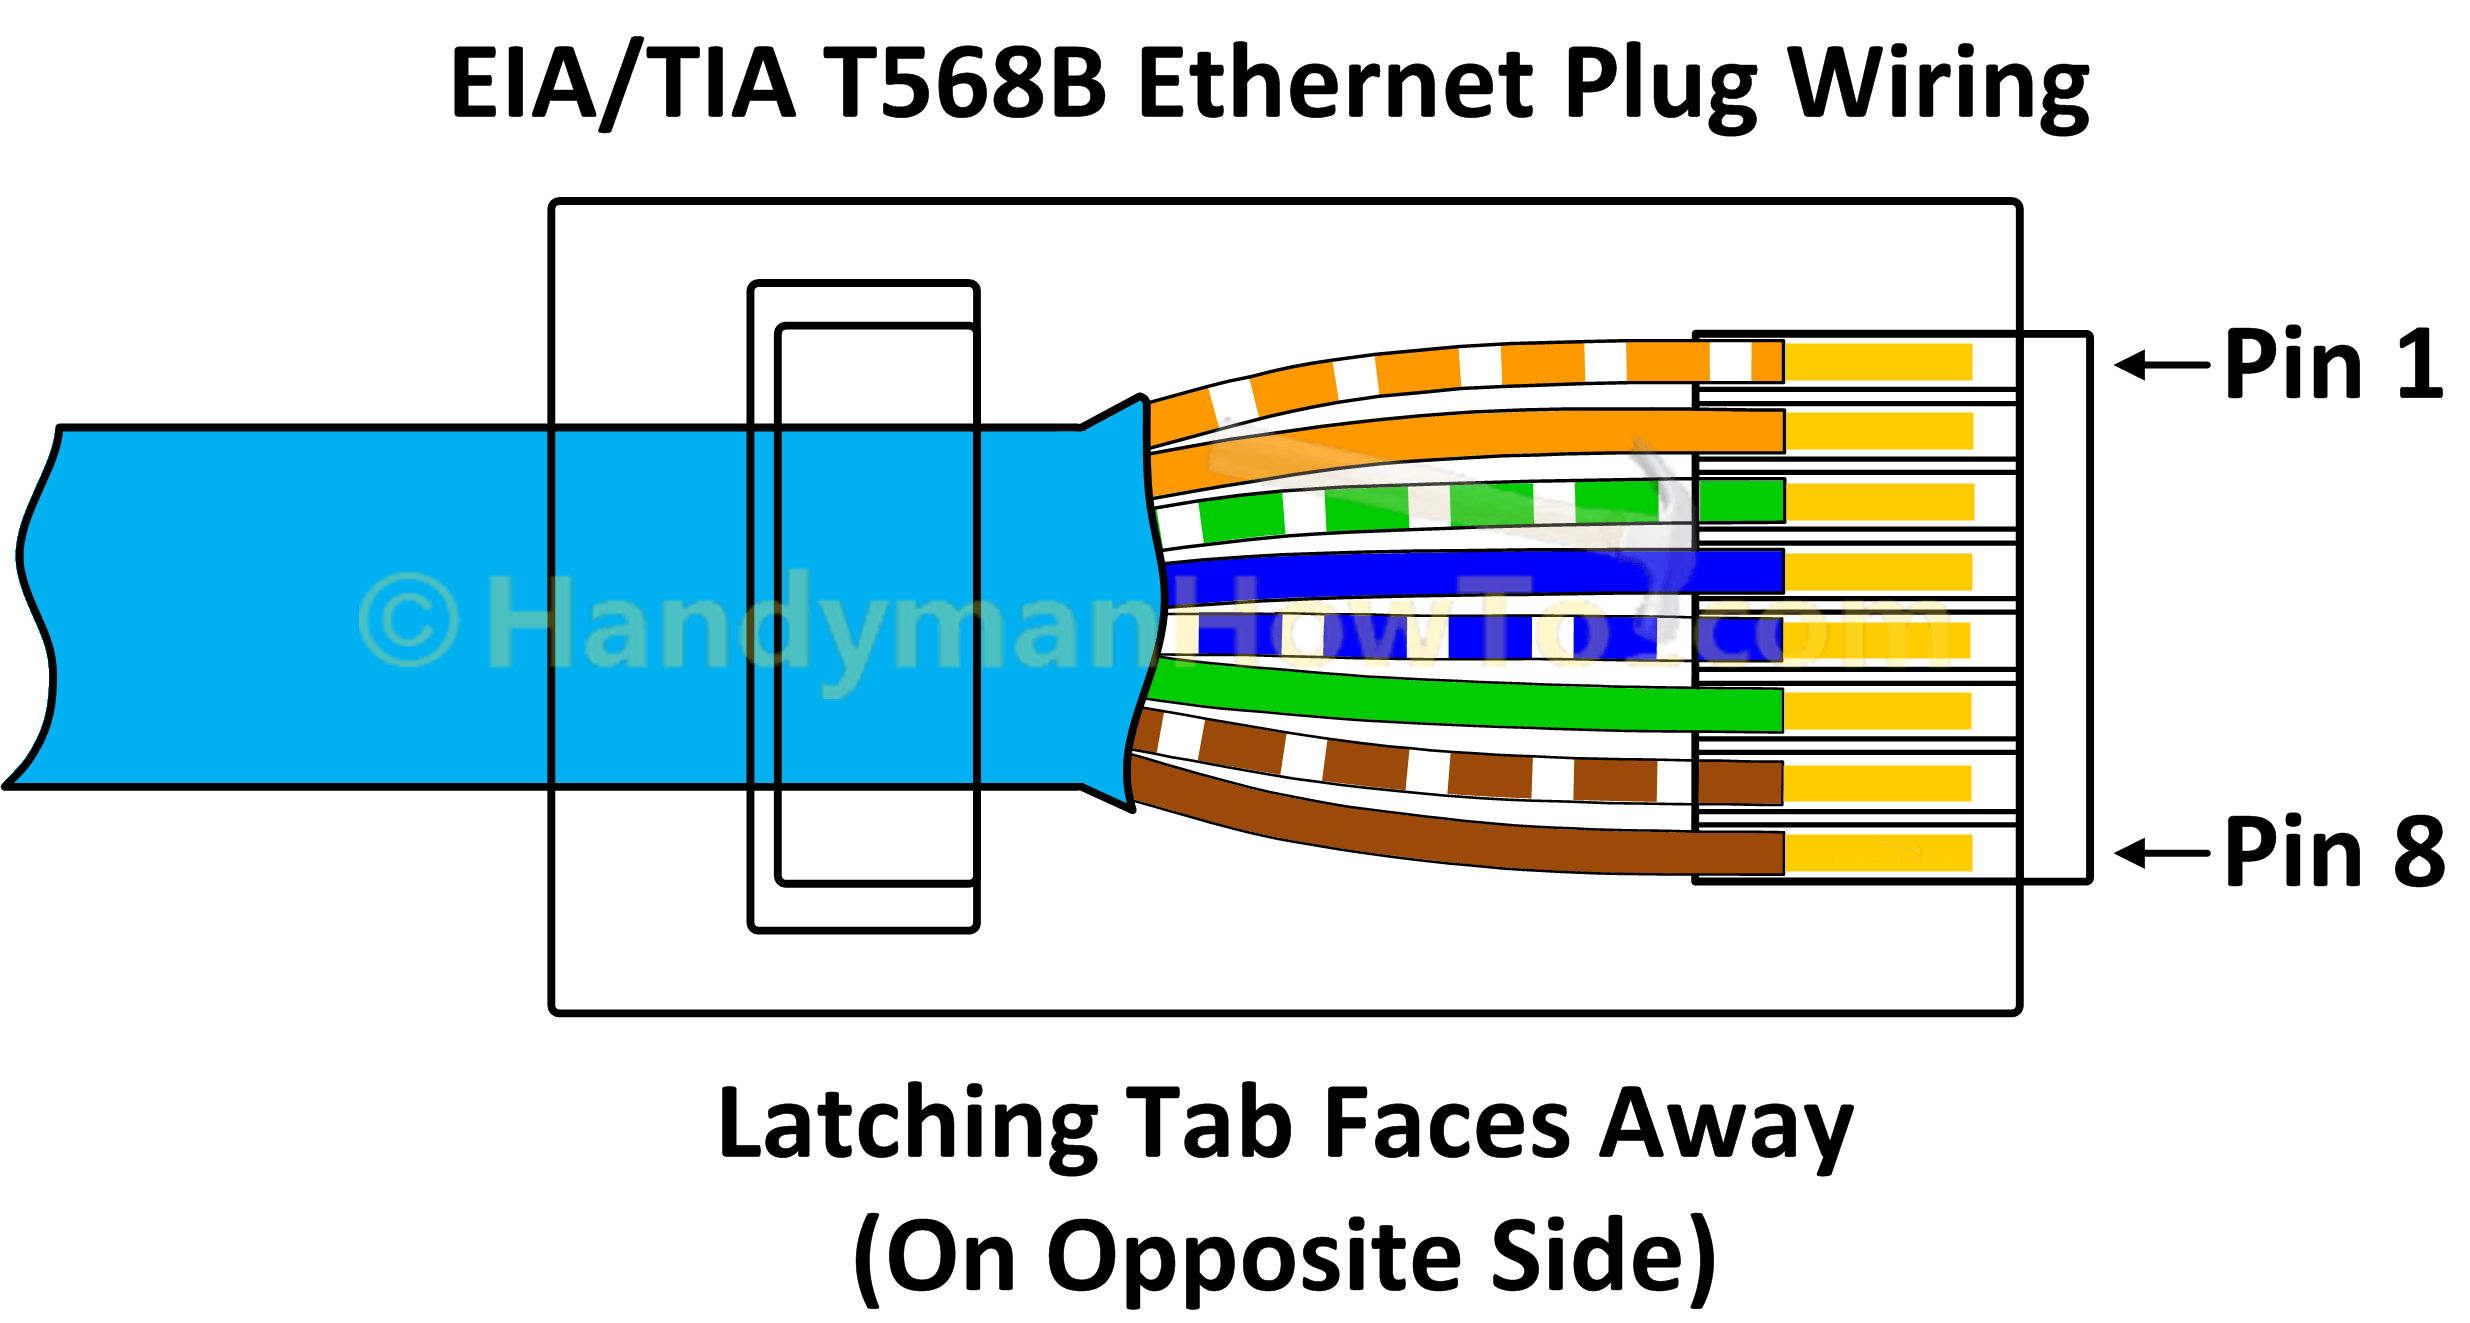 Rj45 Audio Wiring | Wiring Diagram - Dsl Wiring Diagram